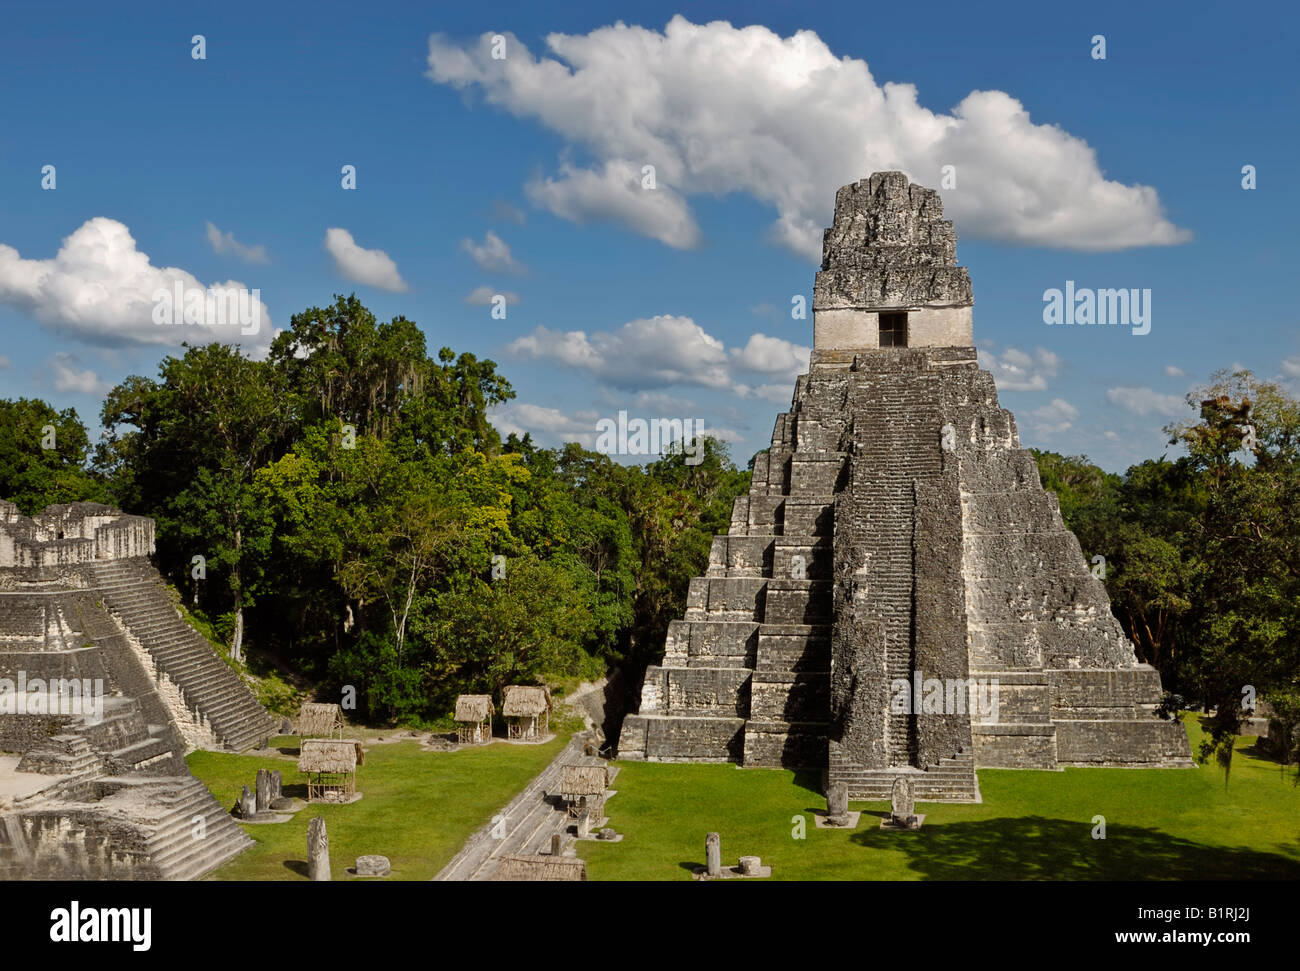 Maya ruins, Tikal, view of Temple I, Yucatan, Guatemala, Central America - Stock Image